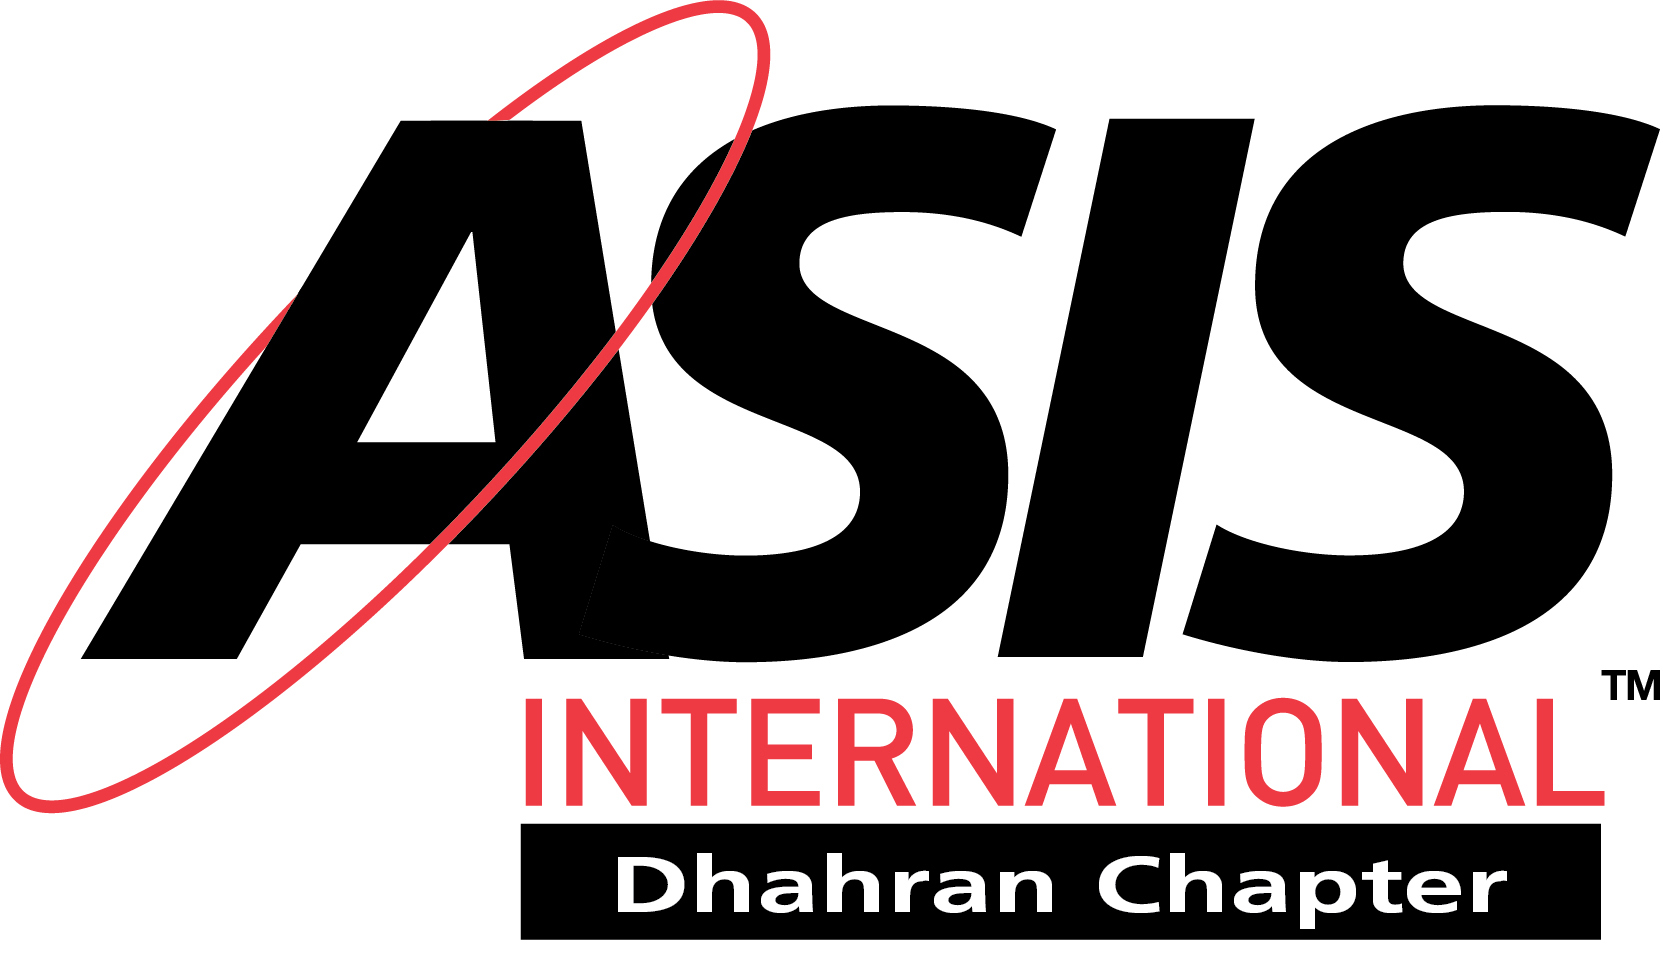 Dhahran Chapter Logo (JPG)